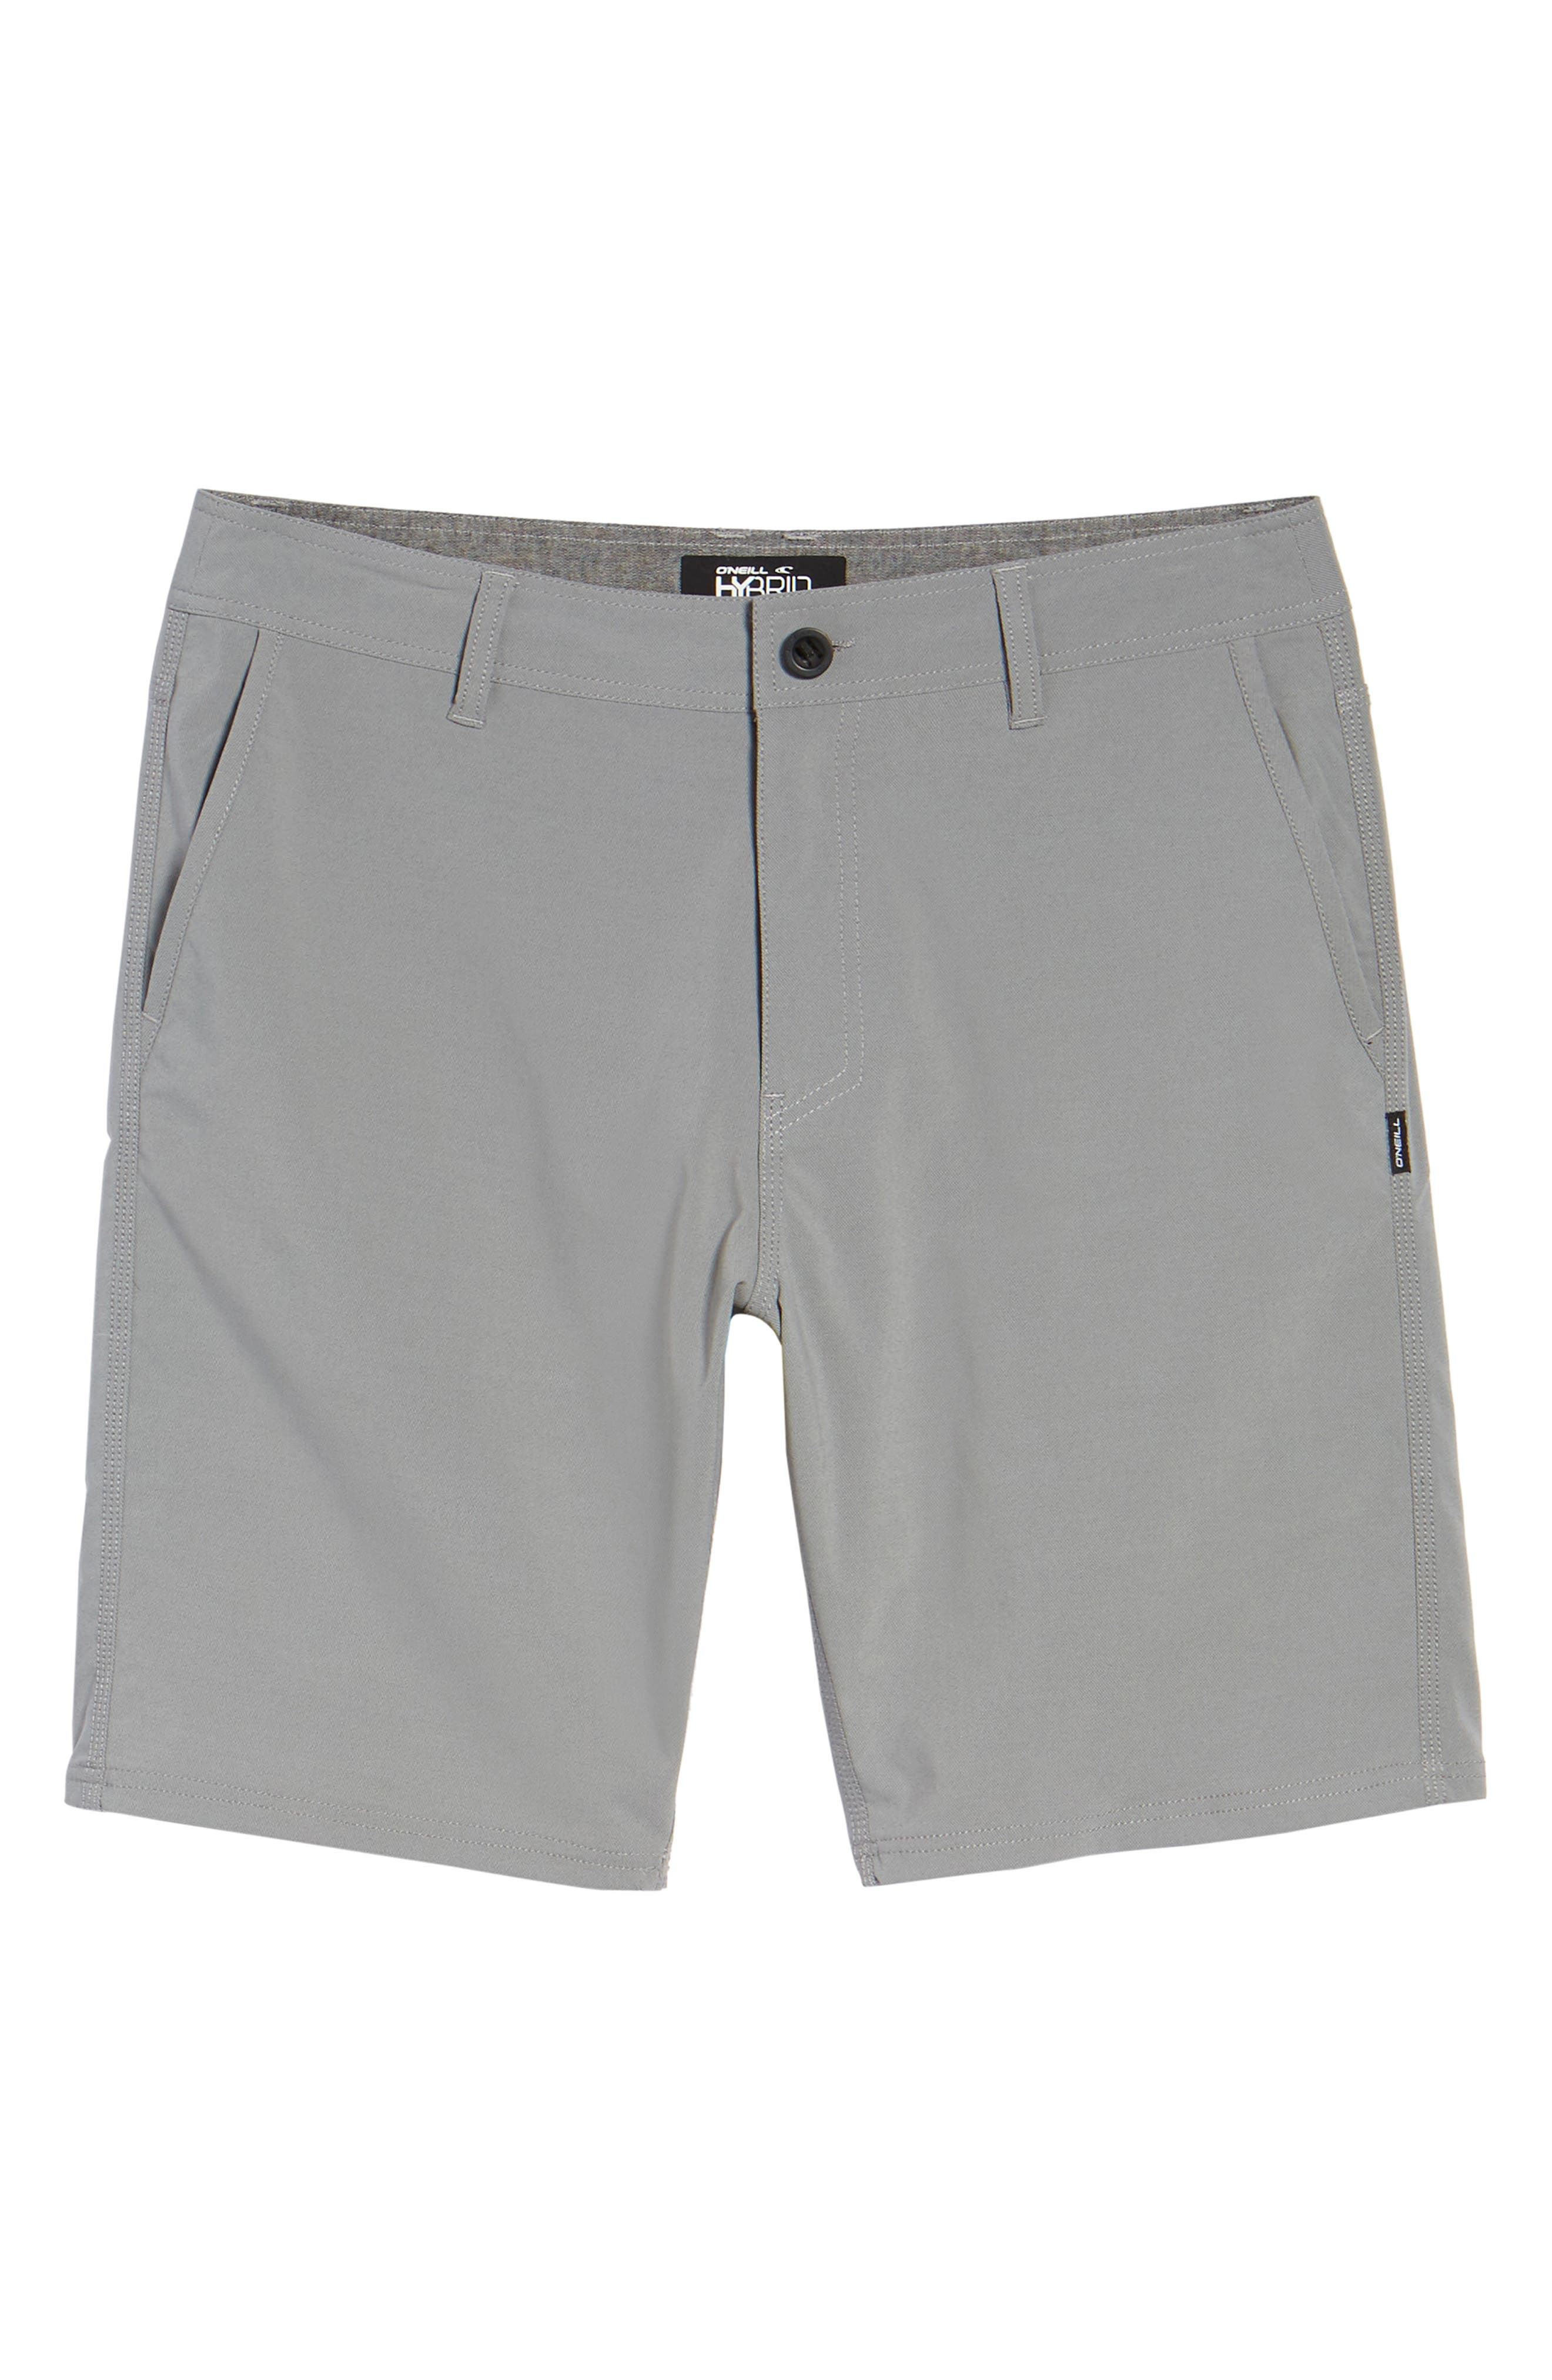 Stockton Hybrid Shorts,                             Alternate thumbnail 6, color,                             GREY